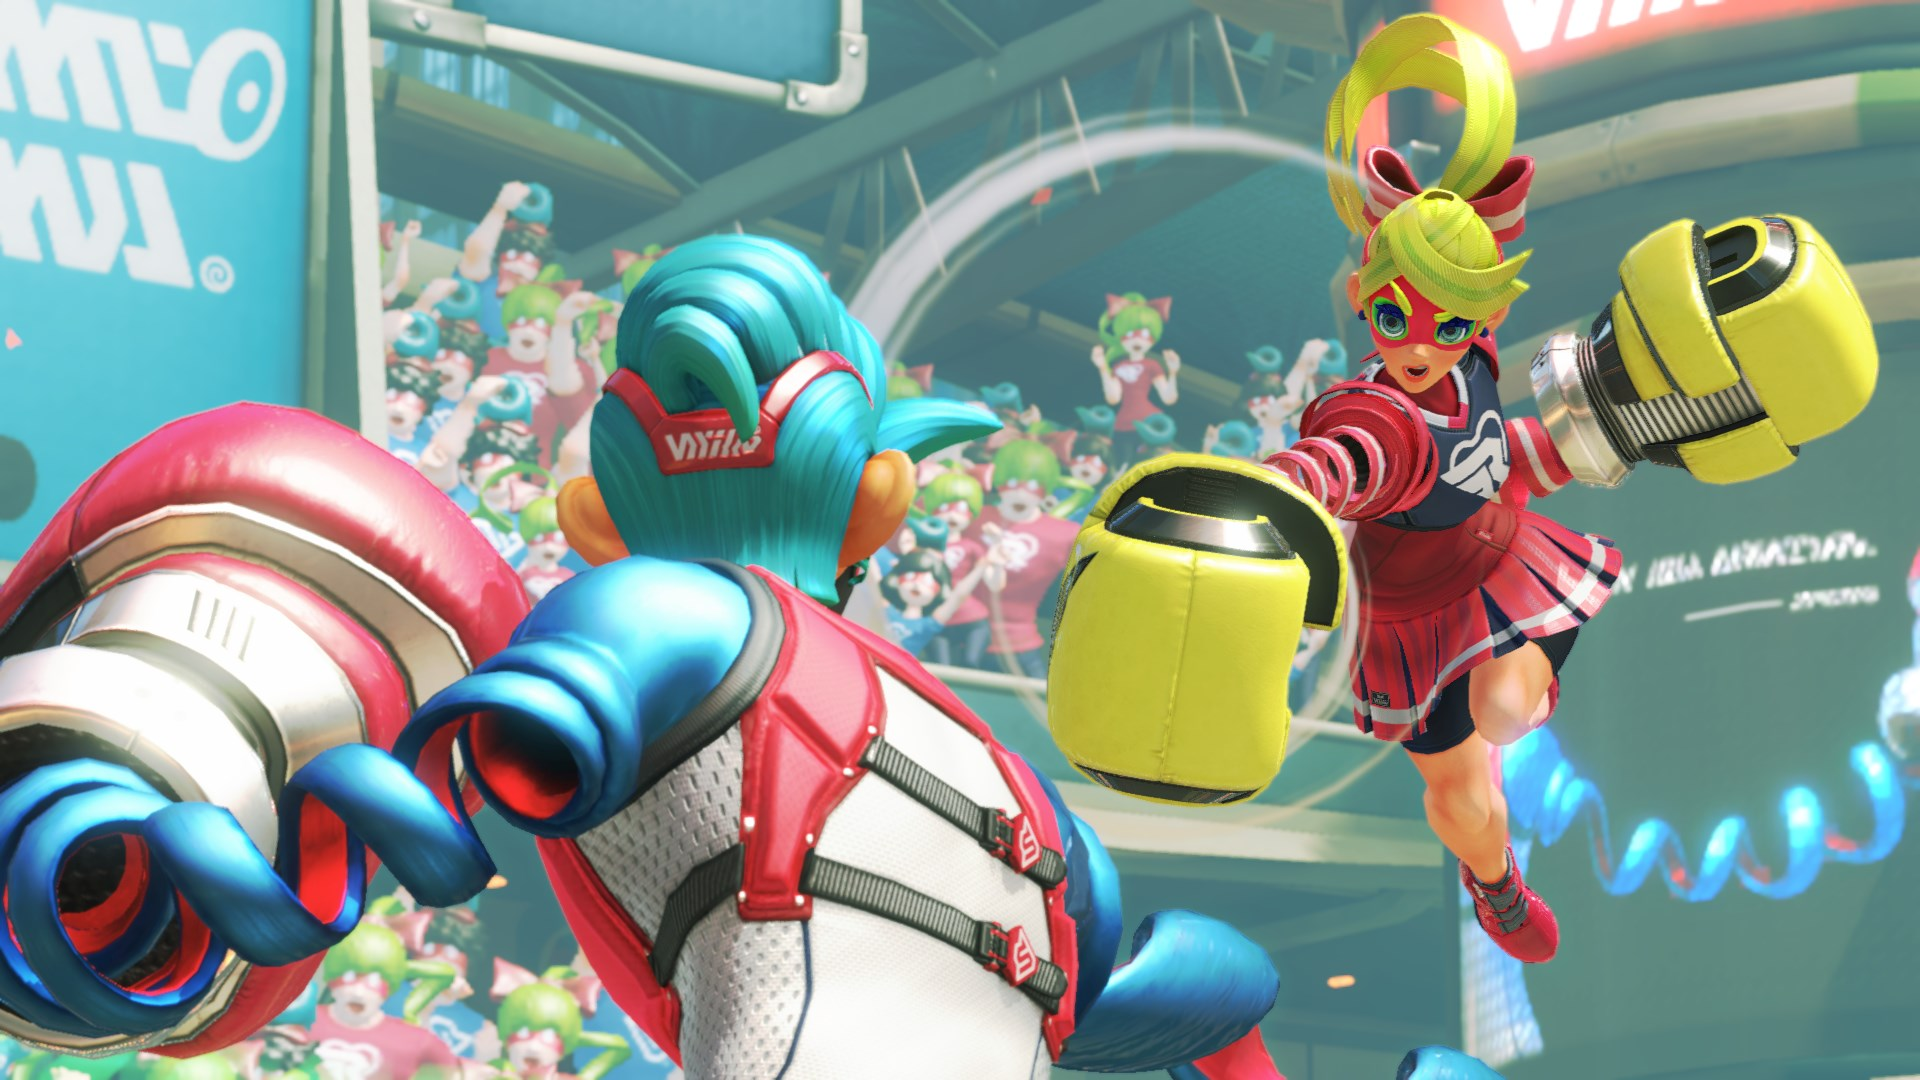 Nintendo Releases New Arms Character and Weapons Trailer